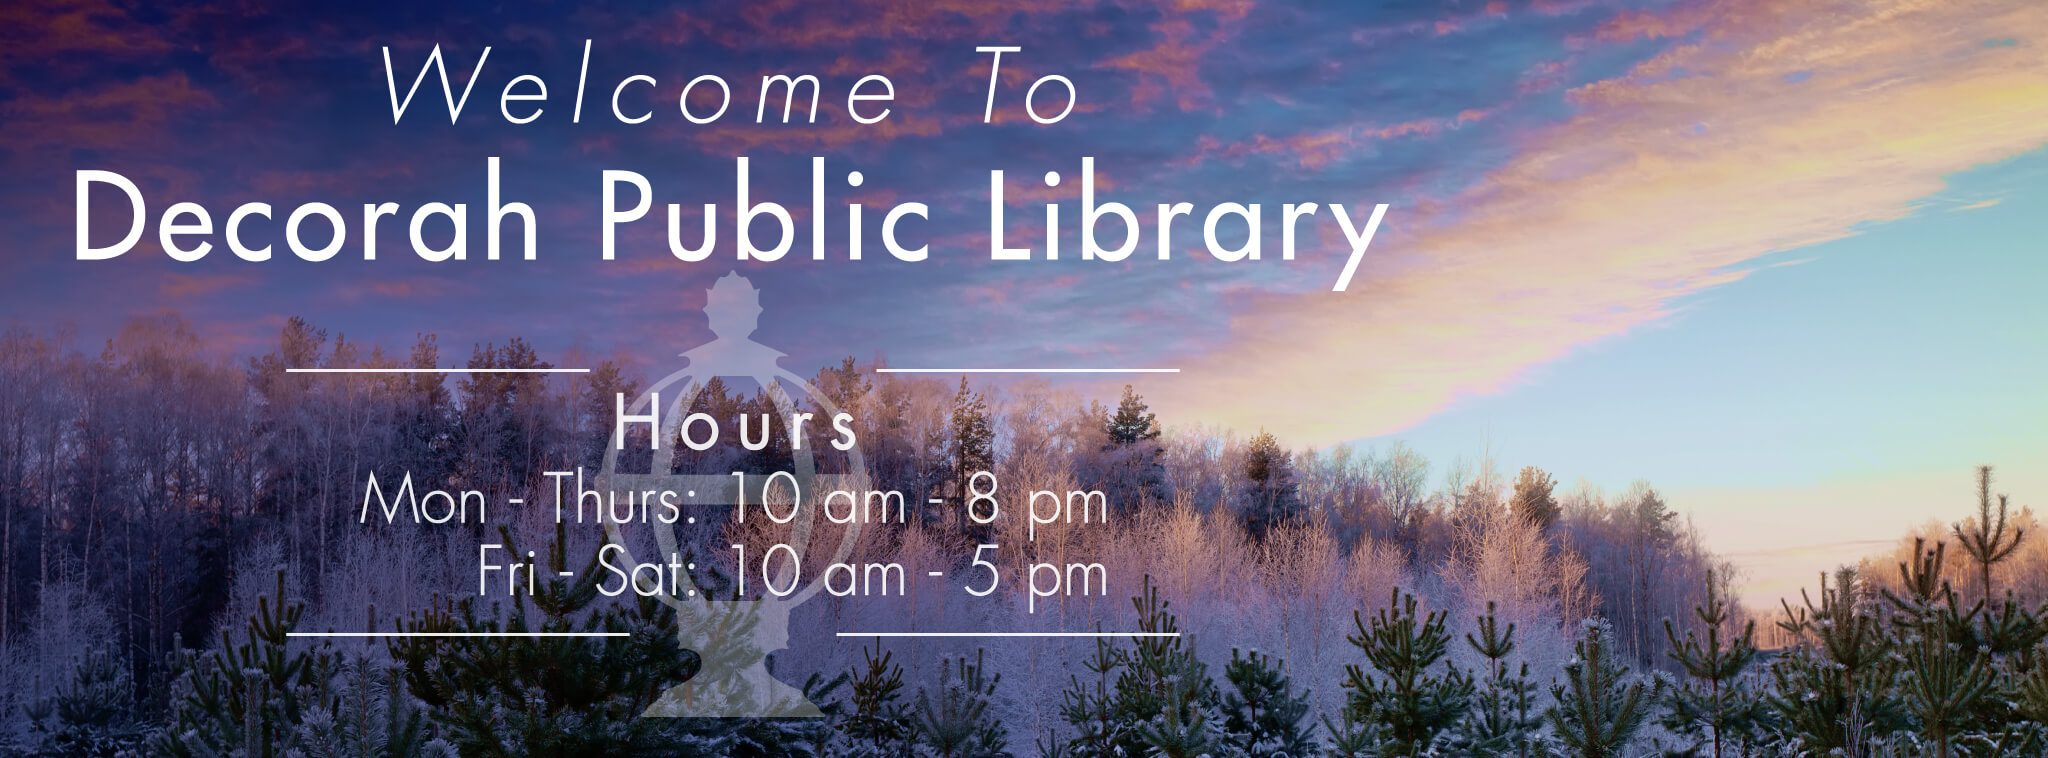 Library winter hours, winter landscape